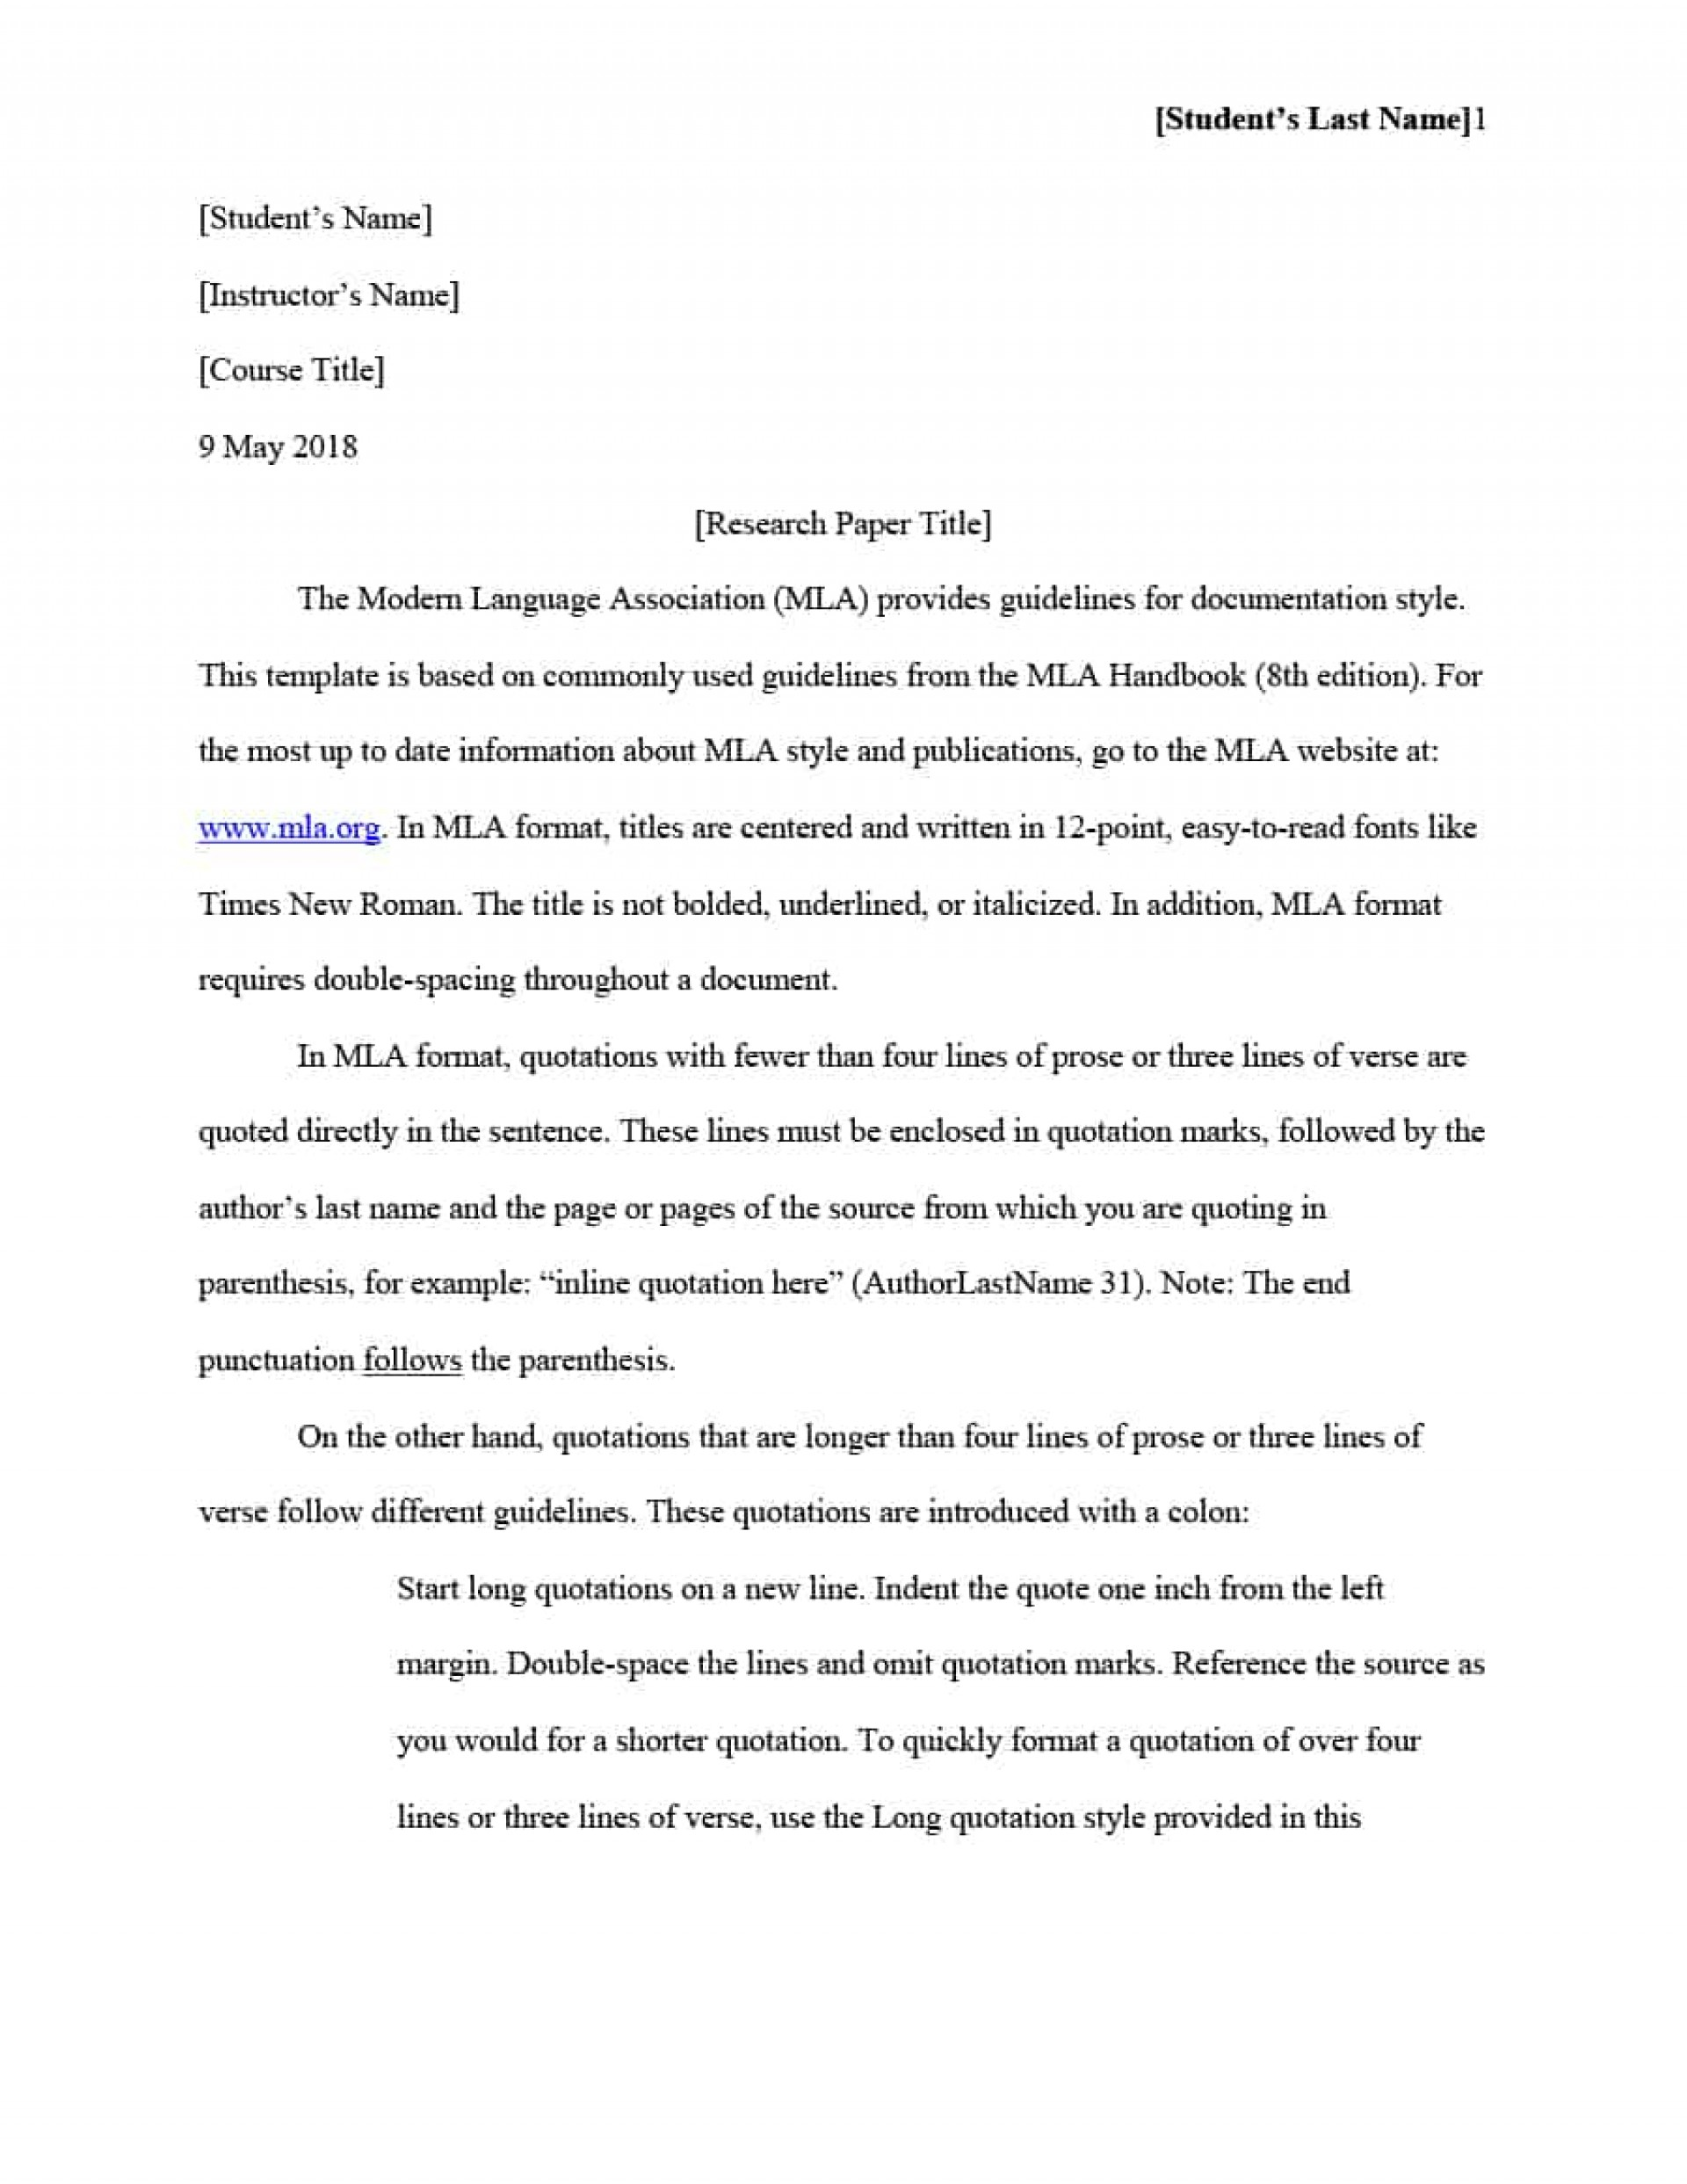 024 Citing Sources In An Essay Example Mla Format Template Phenomenal Argumentative Expository College 1920